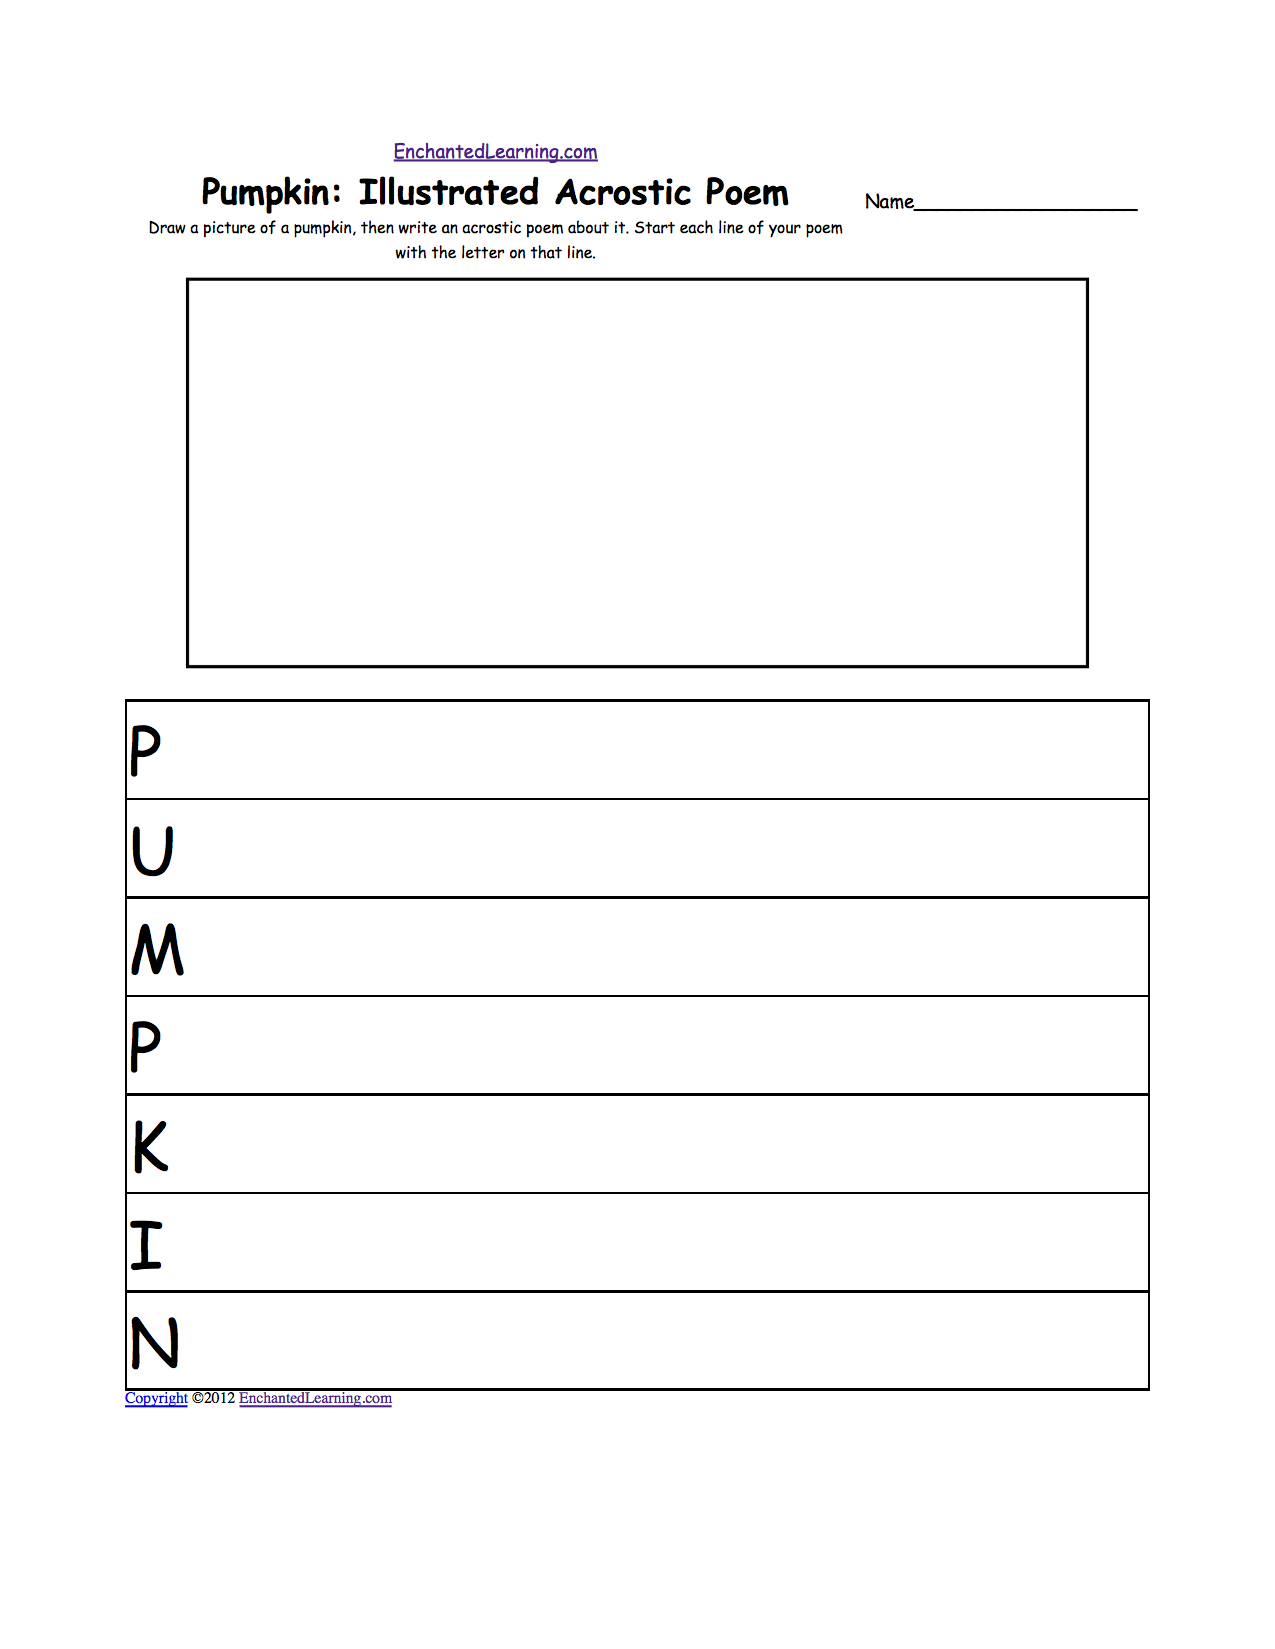 Worksheet Poetry Worksheets acrostic poems plus generate your own poetry worksheets enchantedlearning com